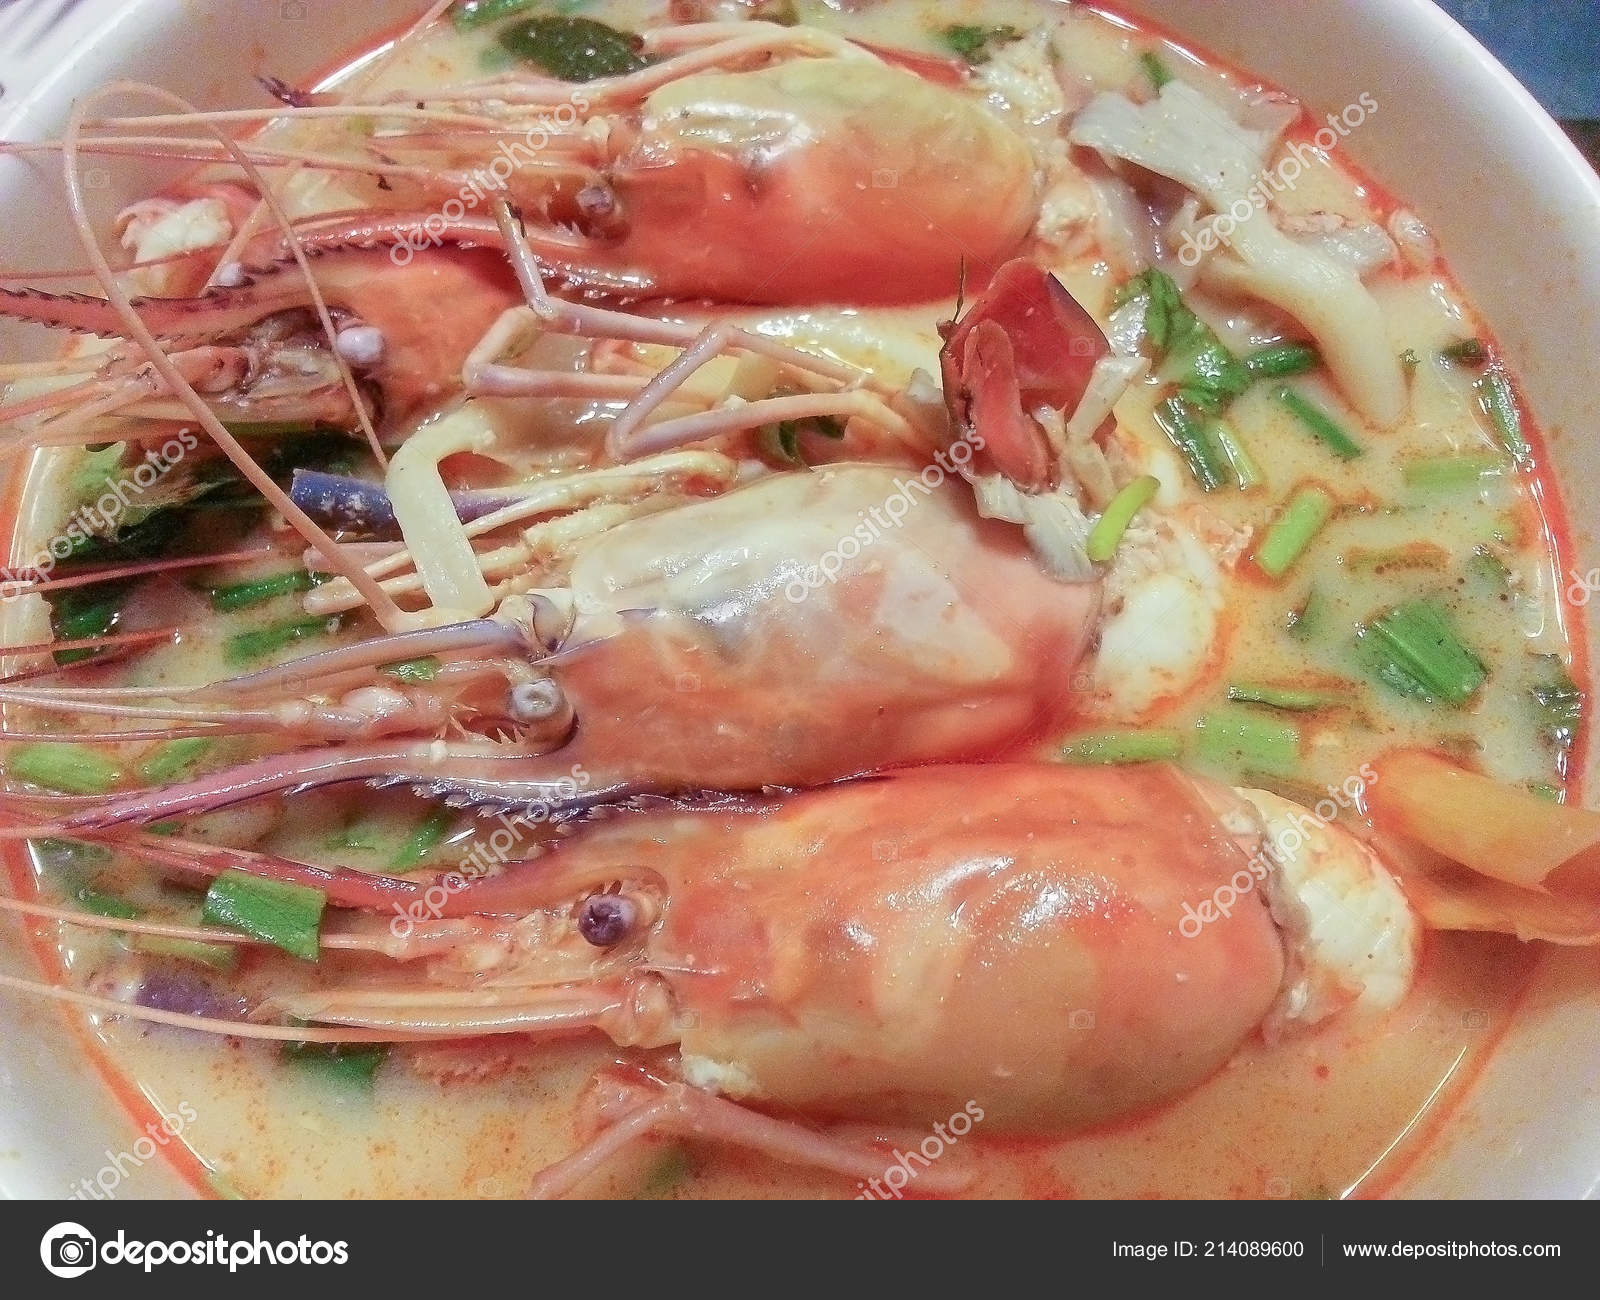 Cuisine Yam Tom Yam Kung Thai Cuisine Stock Photo Sutthituch 214089600